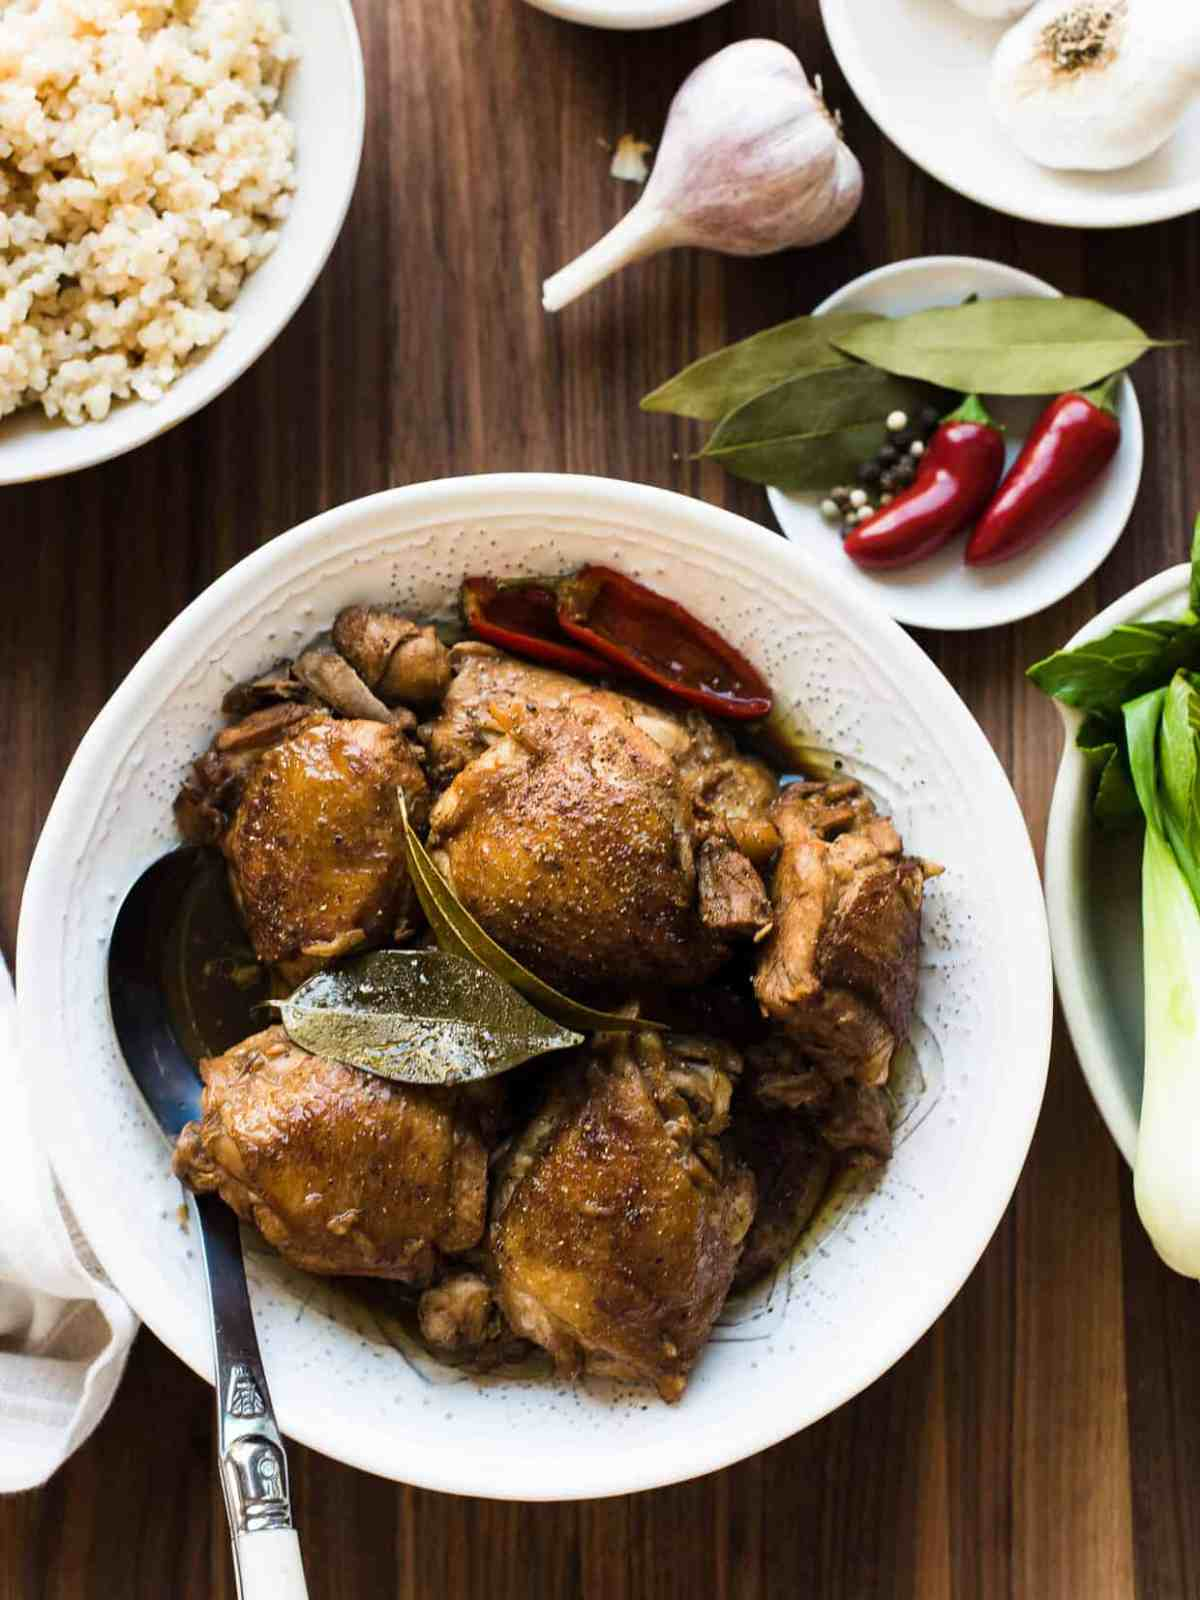 Dish of Authentic Filipino Chicken Adobo served over rice and surrounded by garlic.